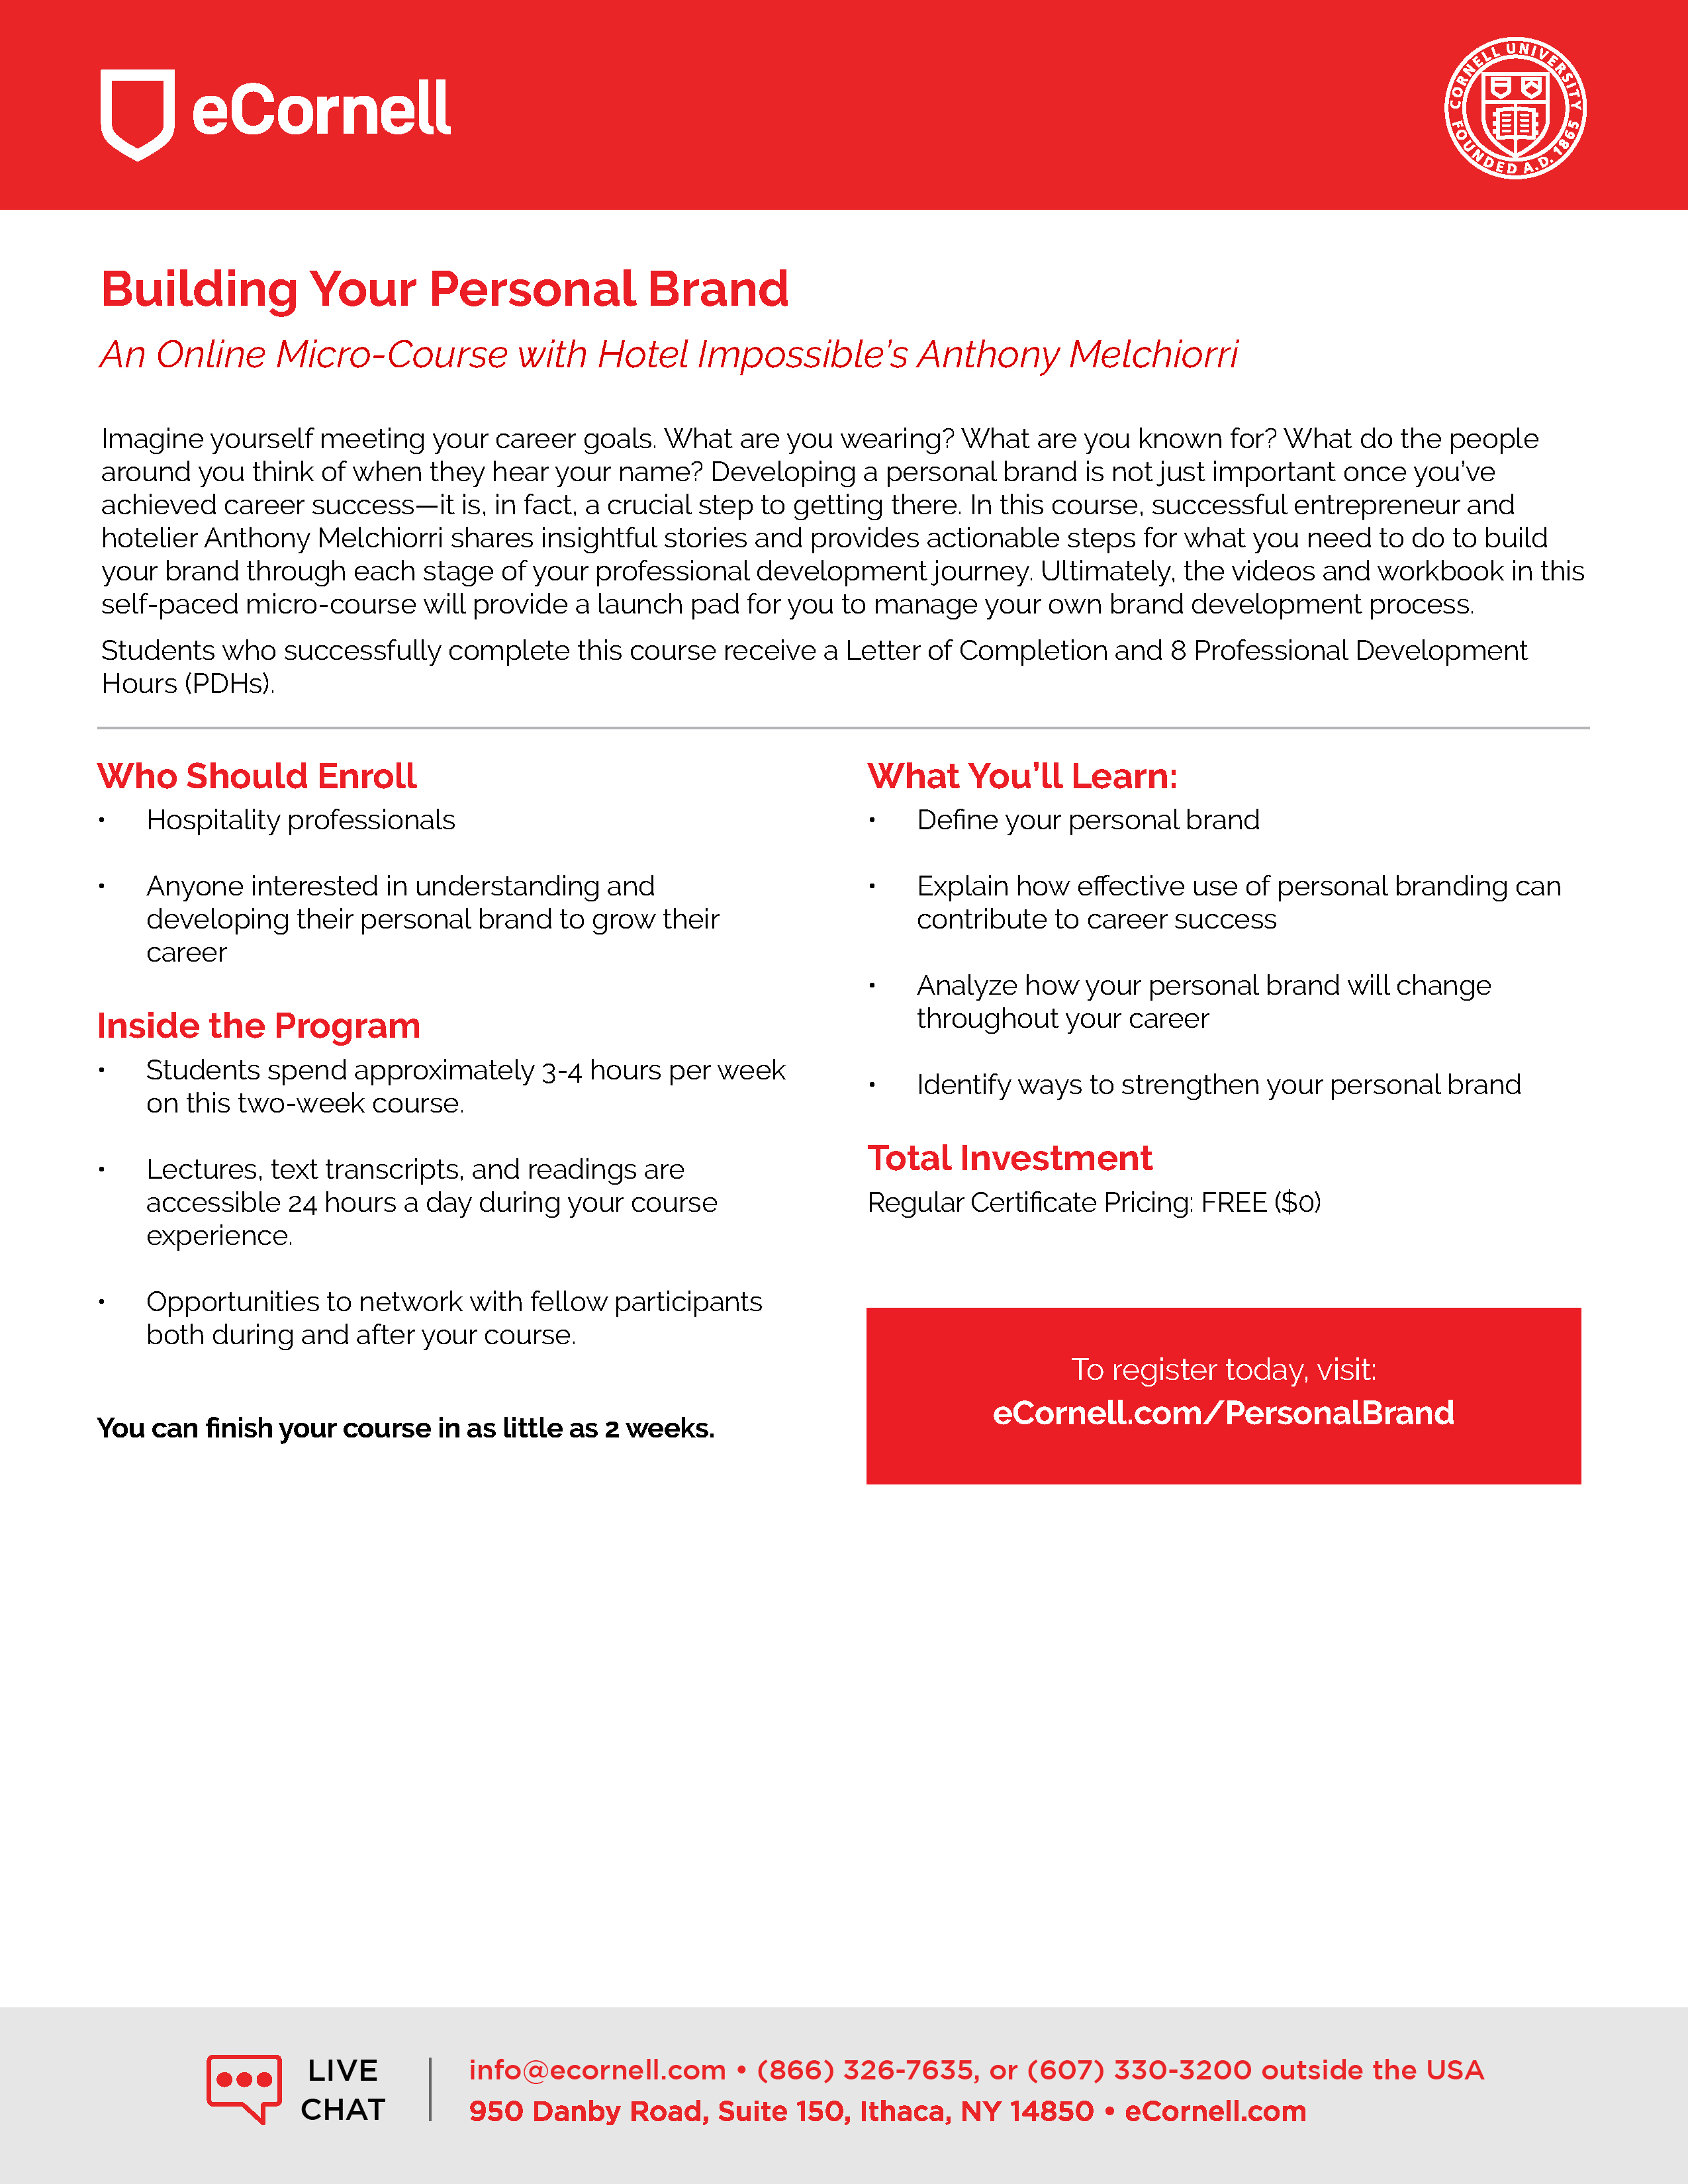 Building Your Personal Brand Flyer